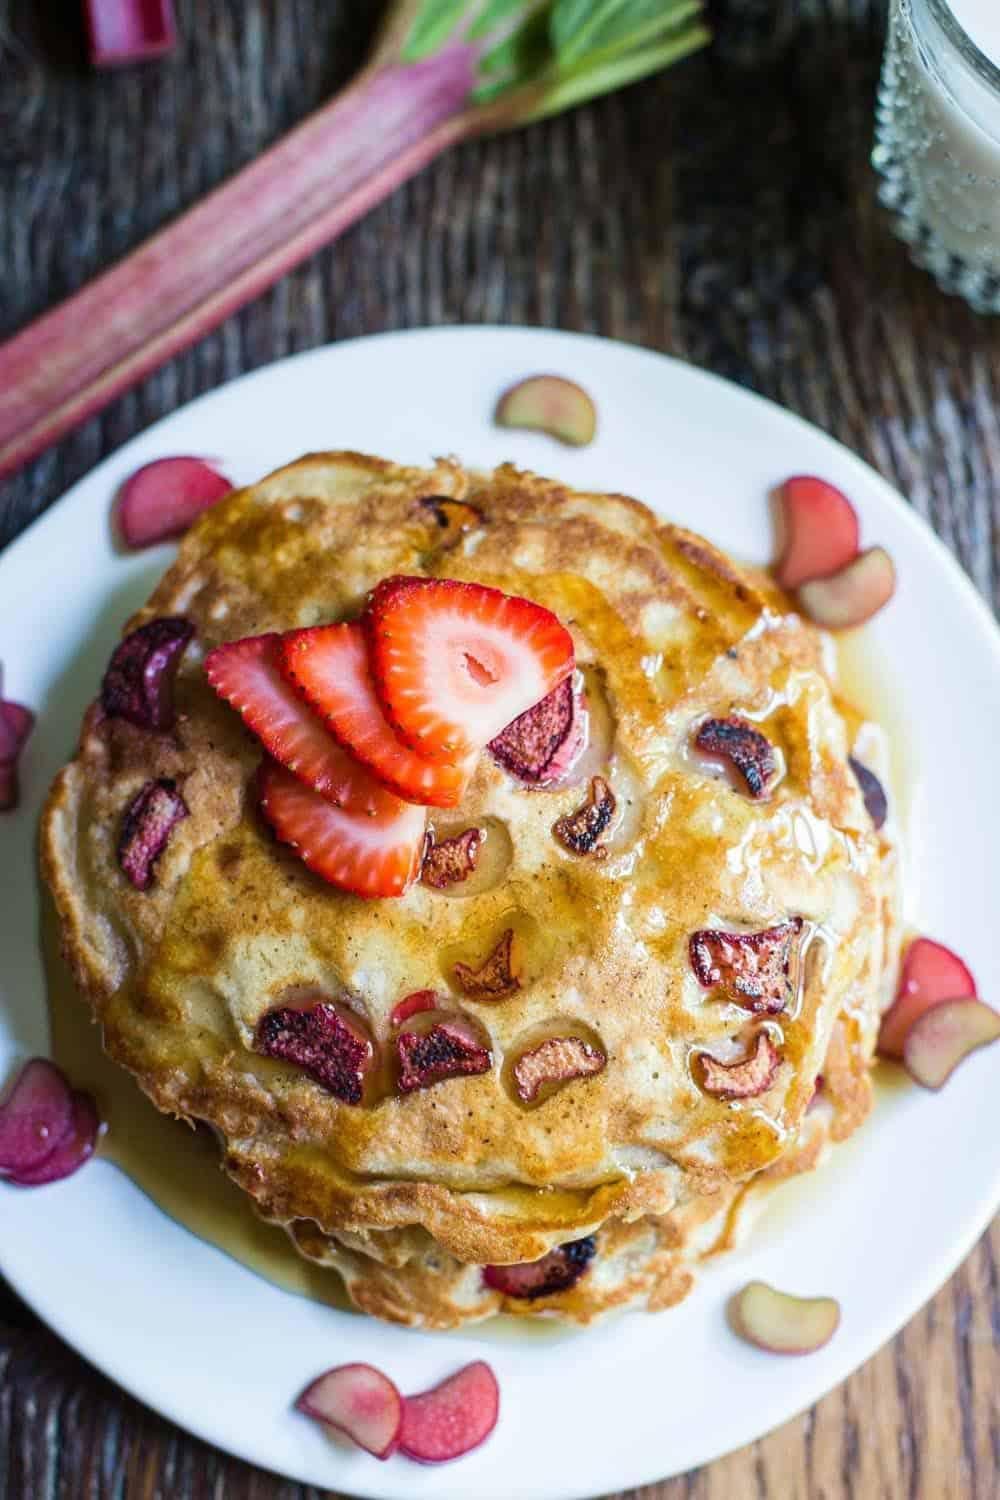 Vegan rhubarb pancakes + 15 Farmers market recipes to make in April! Delicious, vegetarian, (mostly) healthy spring recipes made with fresh, seasonal produce from your local farmers market or CSA bin. Eat local! // Rhubarbarians